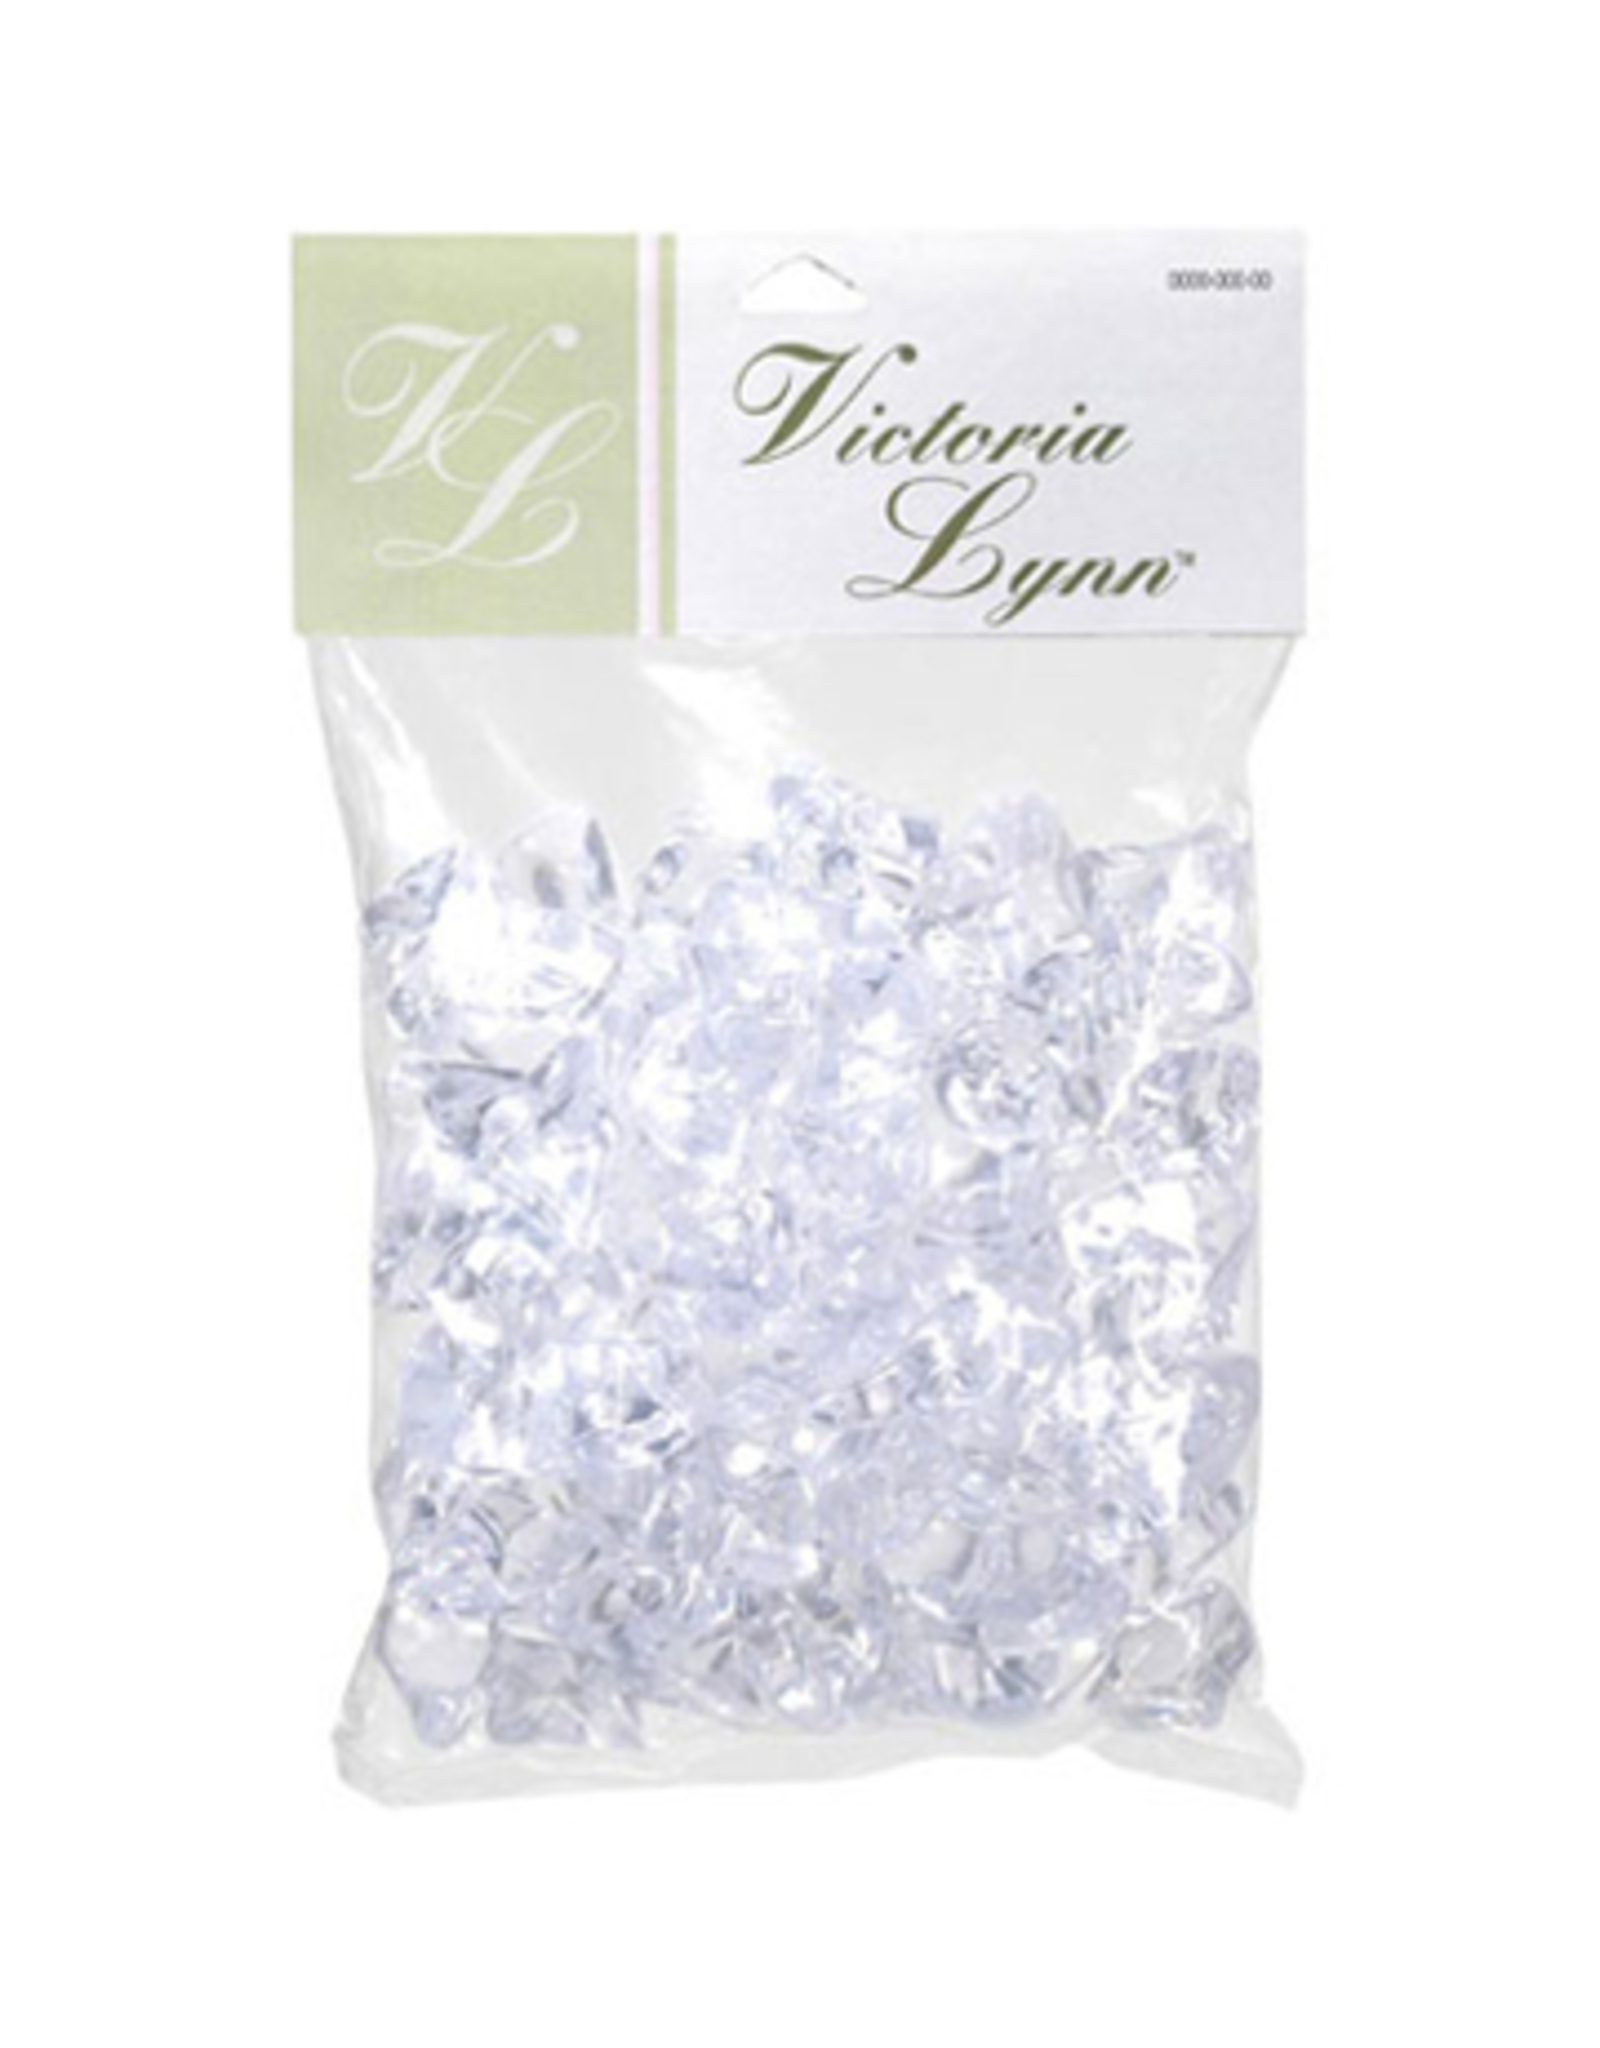 Darice Acrylic Ice Nuggets 8oz Pack Clear Acrylic Ice Decoration